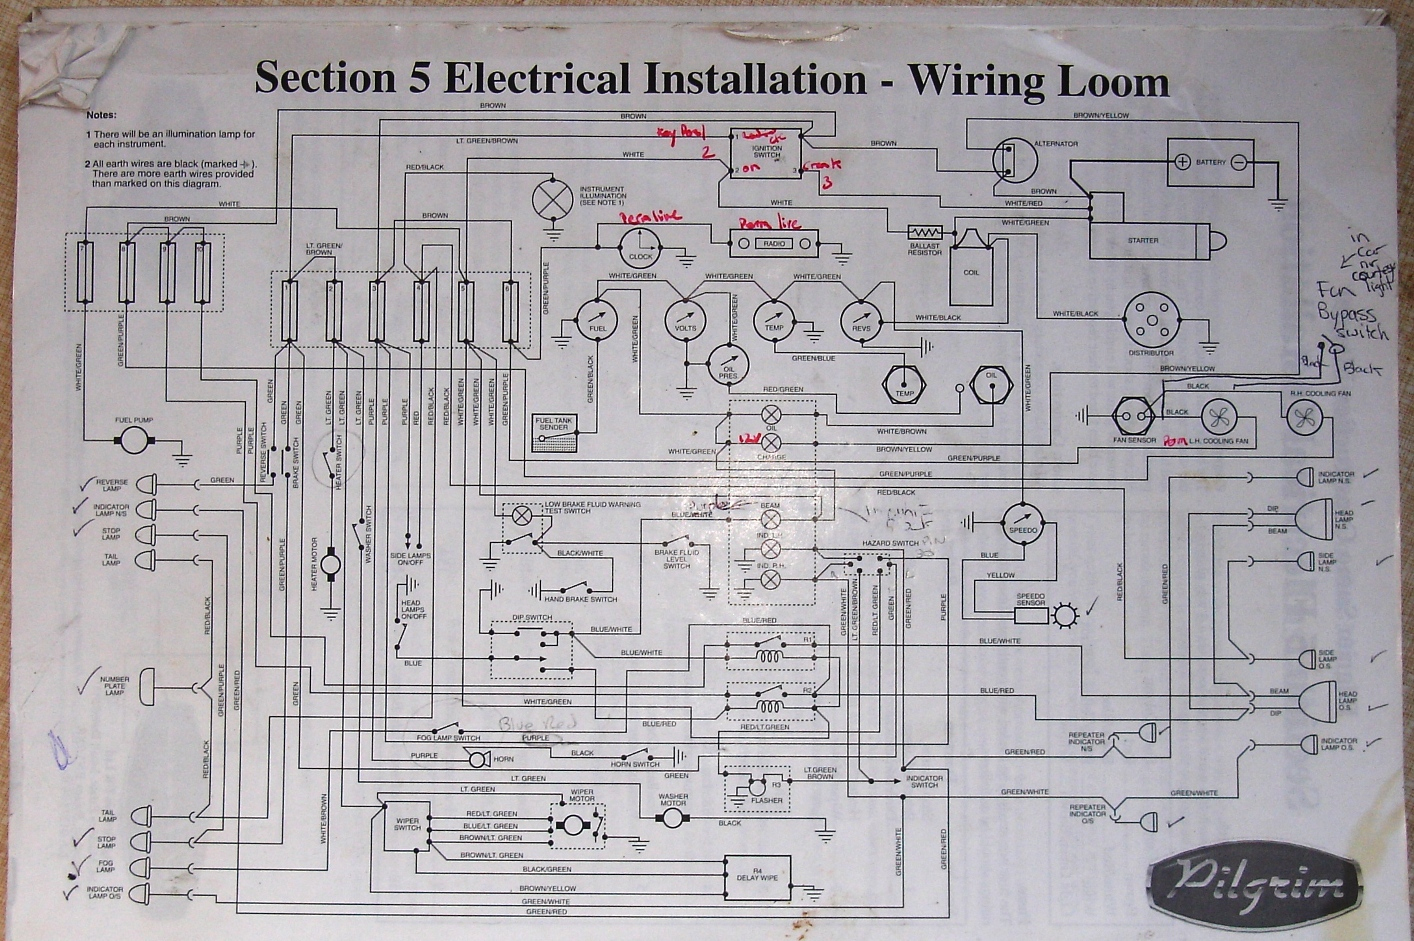 General Wiring Diagram Car Libraries Alternator Electrics And Misc How To Build A Pilgrim Sumogeneral 13